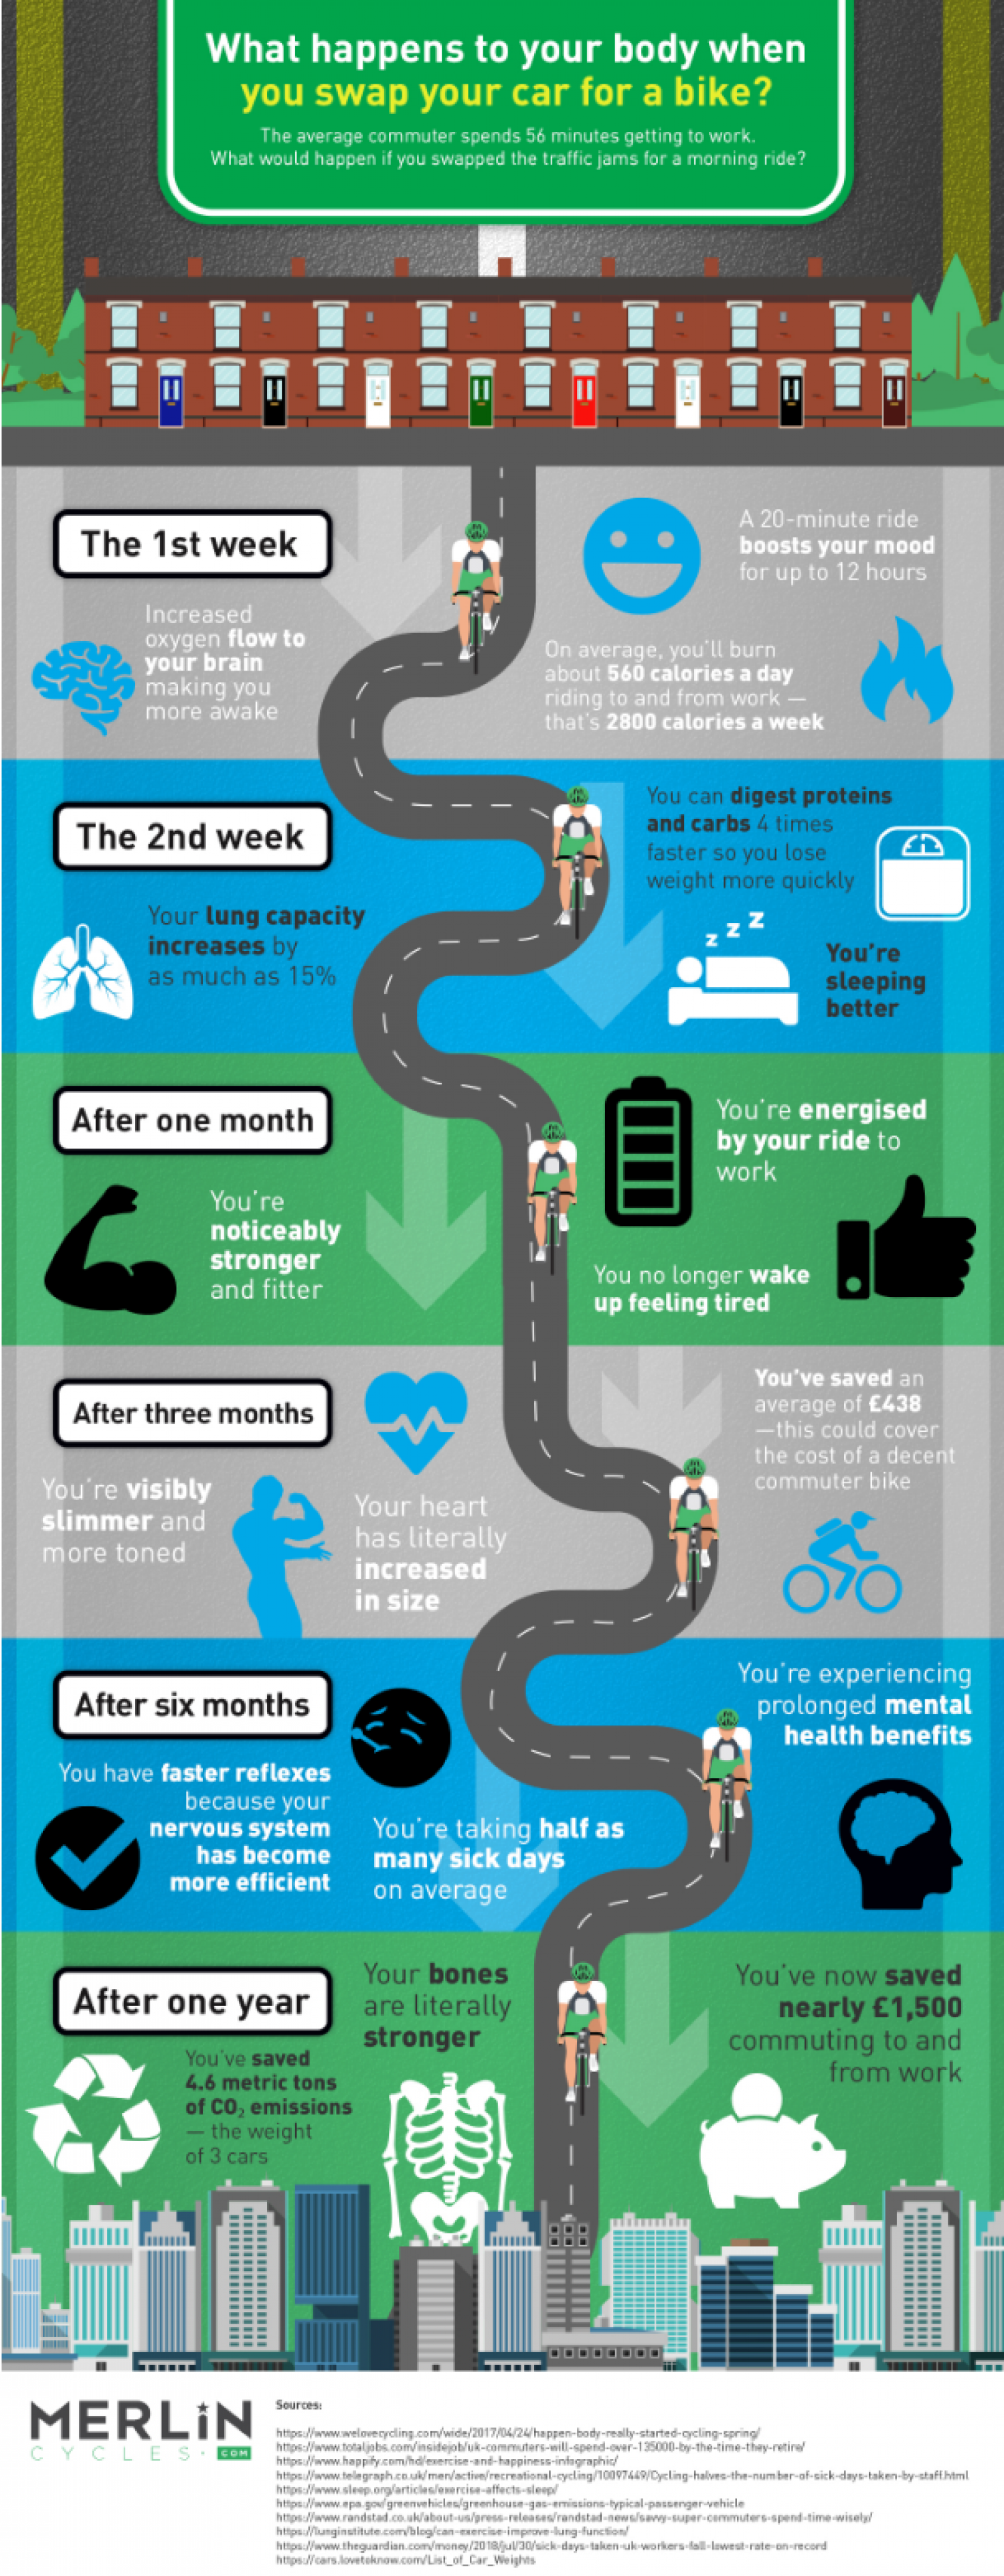 What would happen to your body if you swapped your car for a bike? Infographic